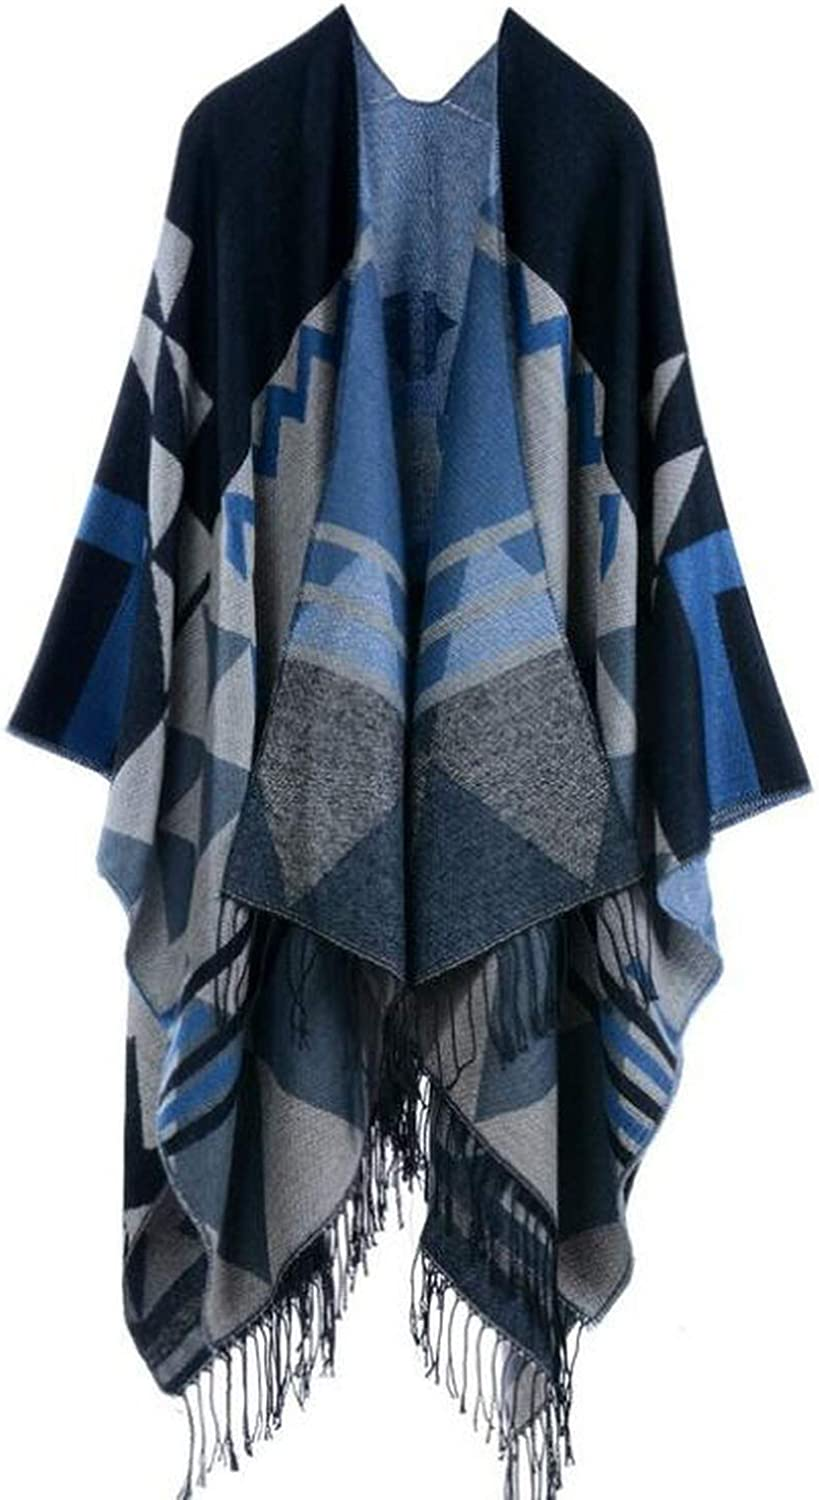 Women Vintage Pattern Tassel Poncho Shawl Cape Cardigan Retro Capes For Women,bluee,One Size